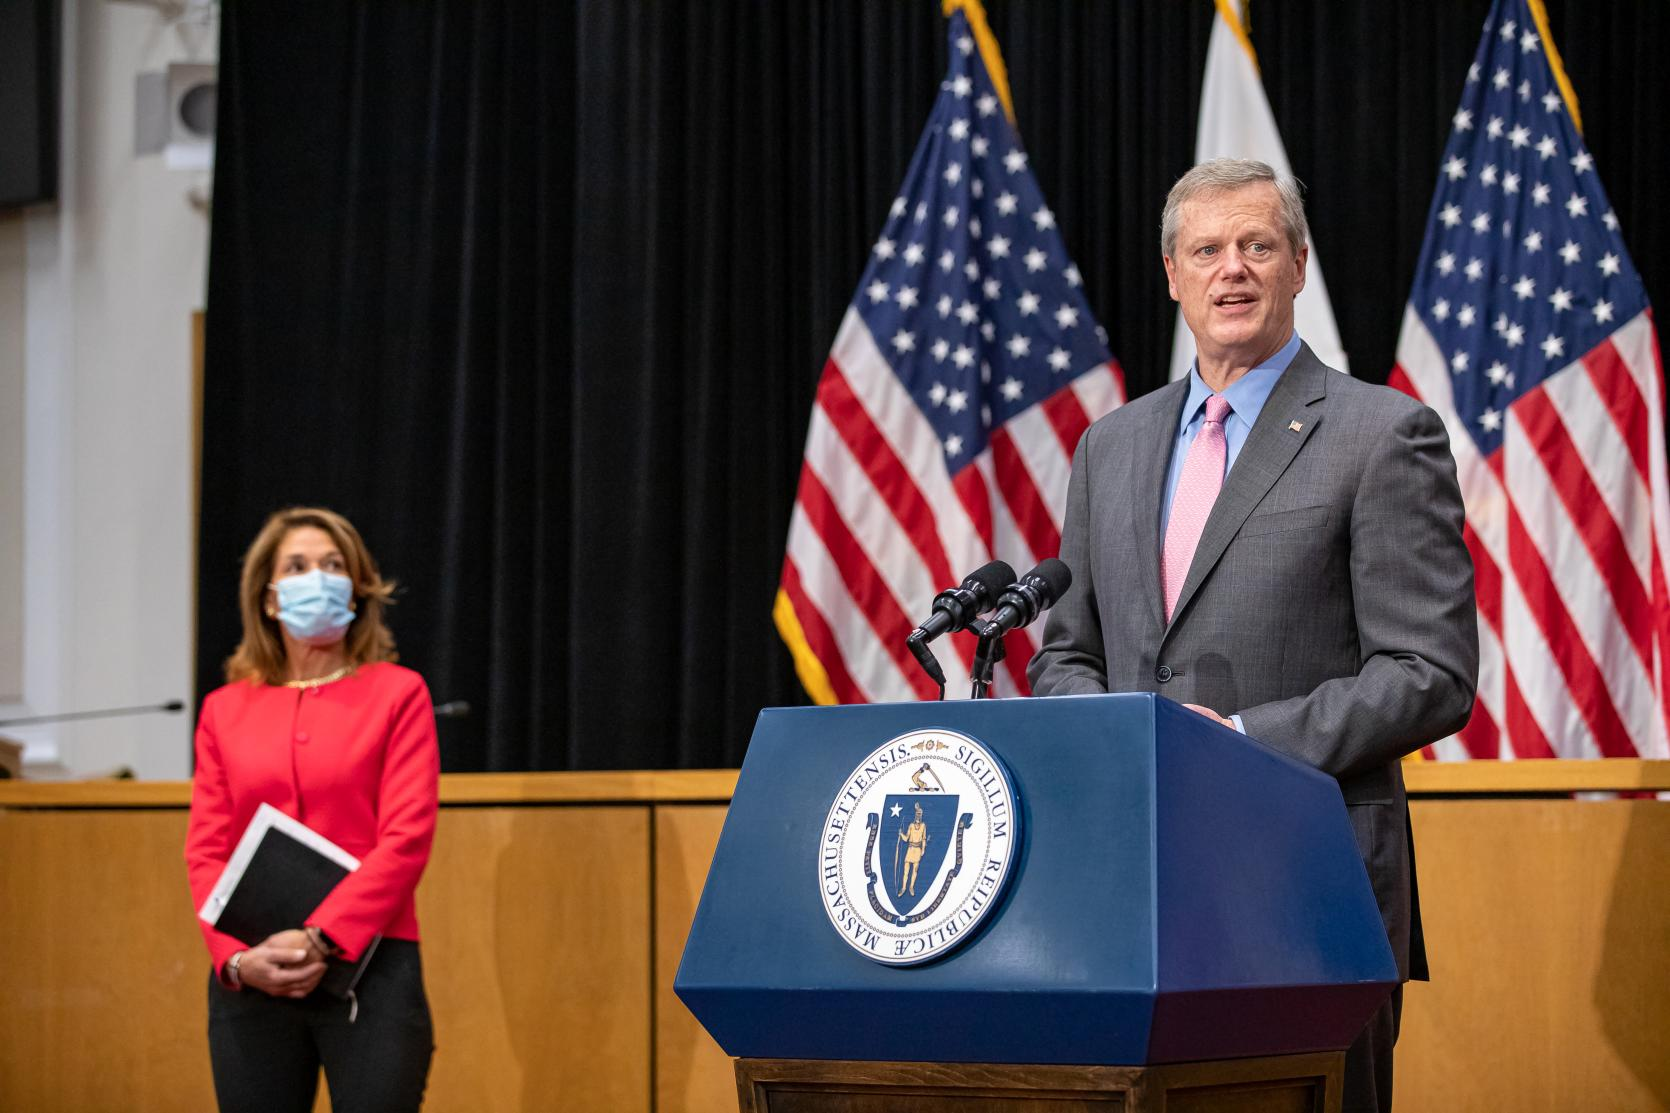 Baker-Polito Administration Submits Revised Fiscal Year 2021 Budget Proposal